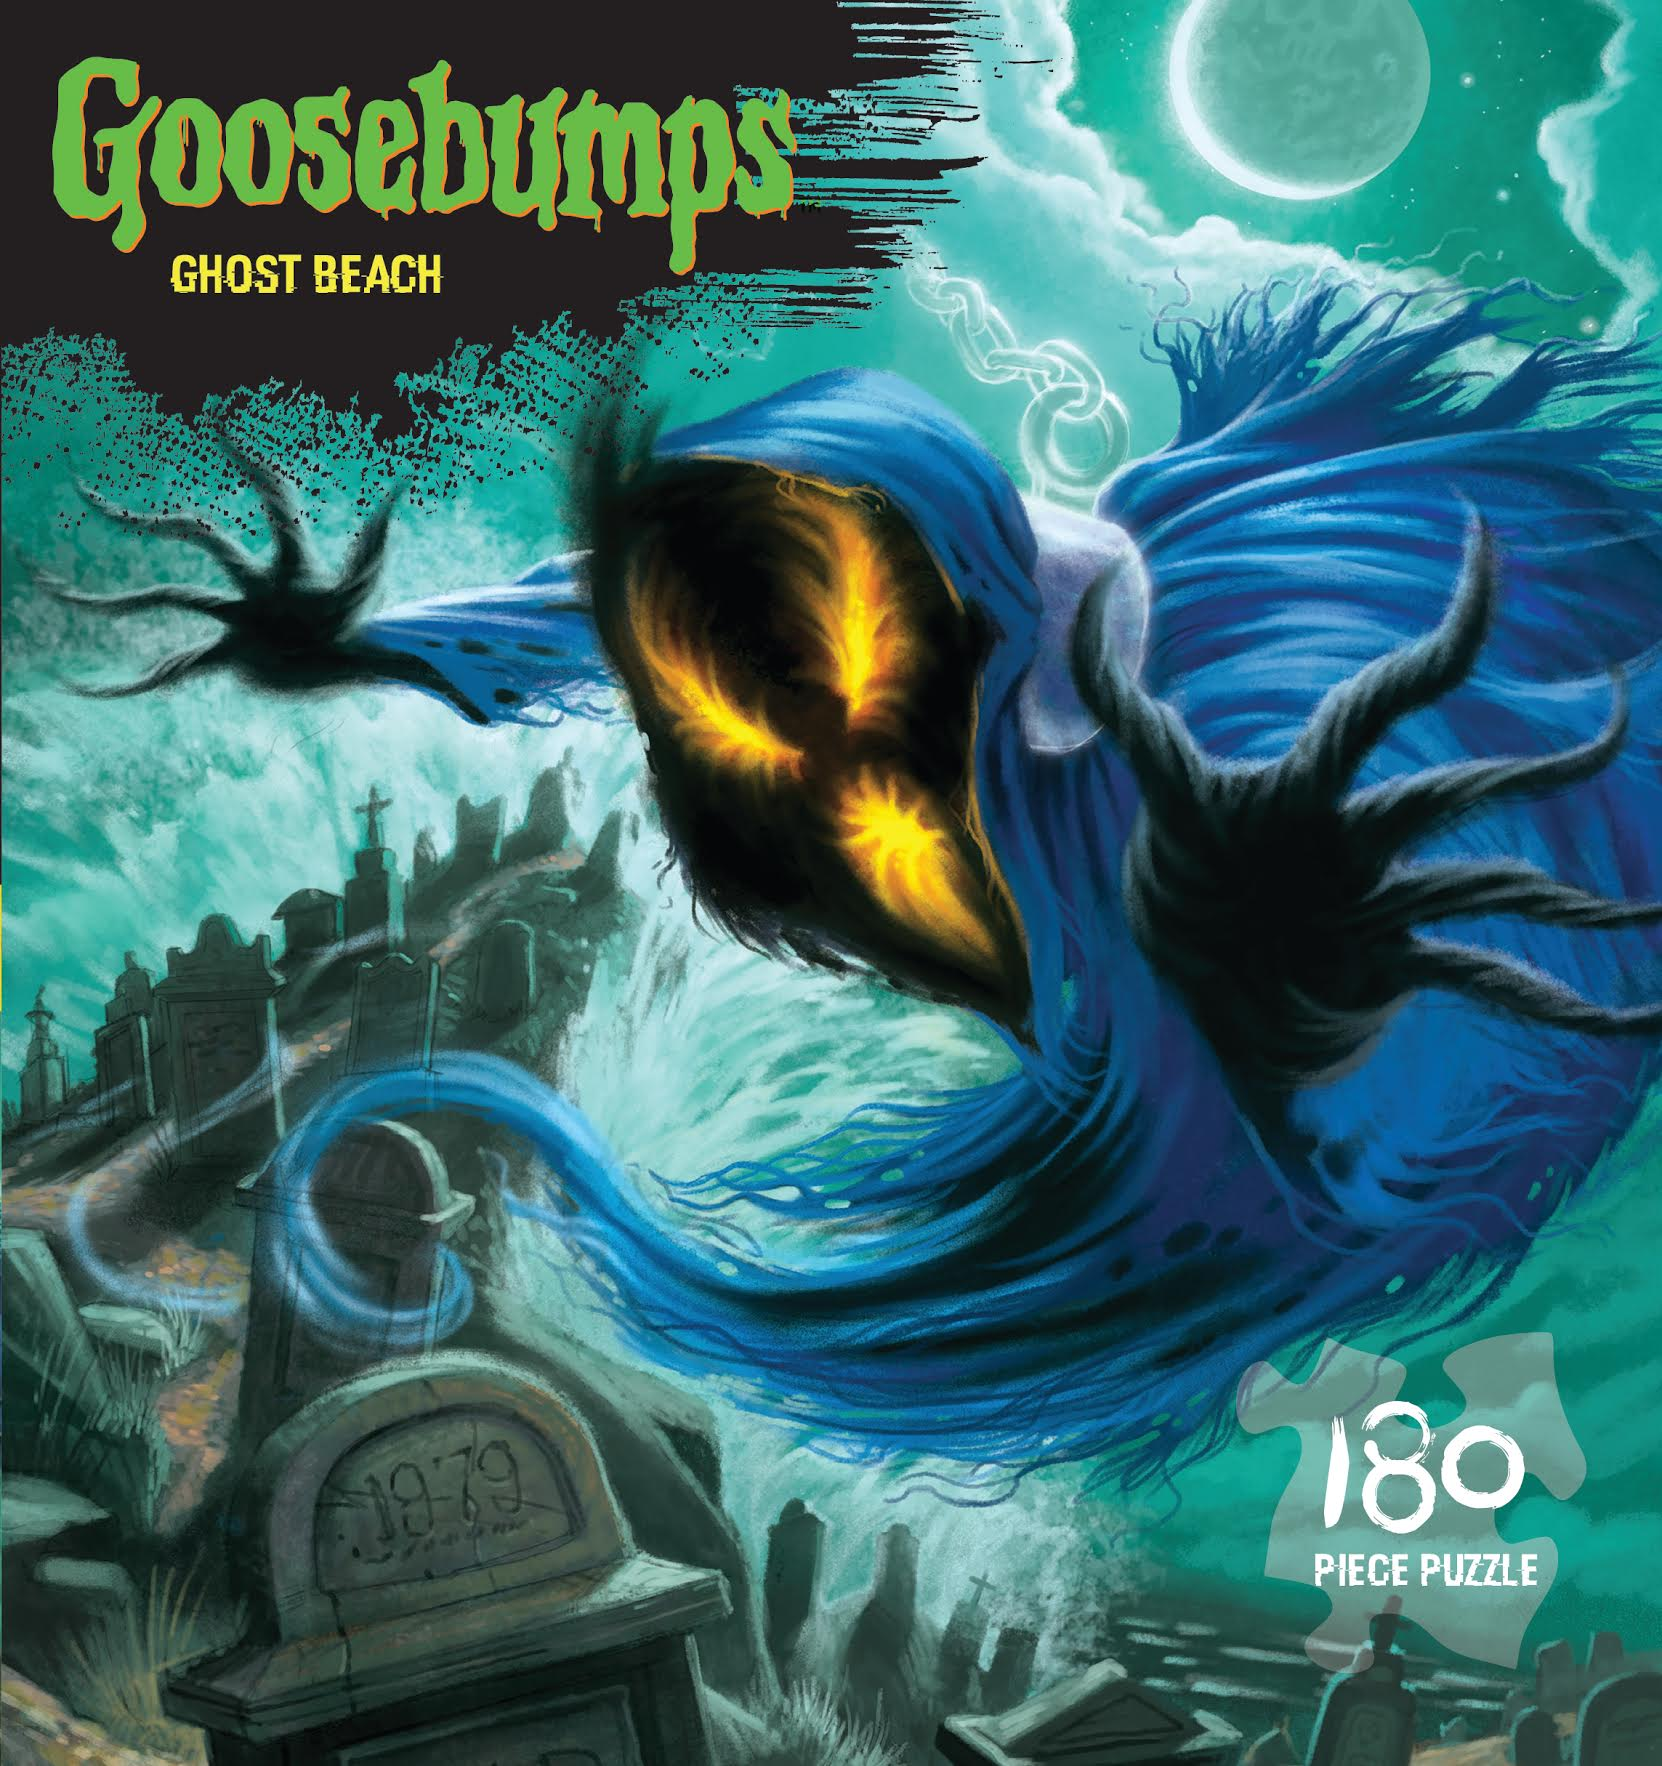 Goosebumps Puzzle - Ghost Beach 180 piece jigsaw puzzle by Outset Media